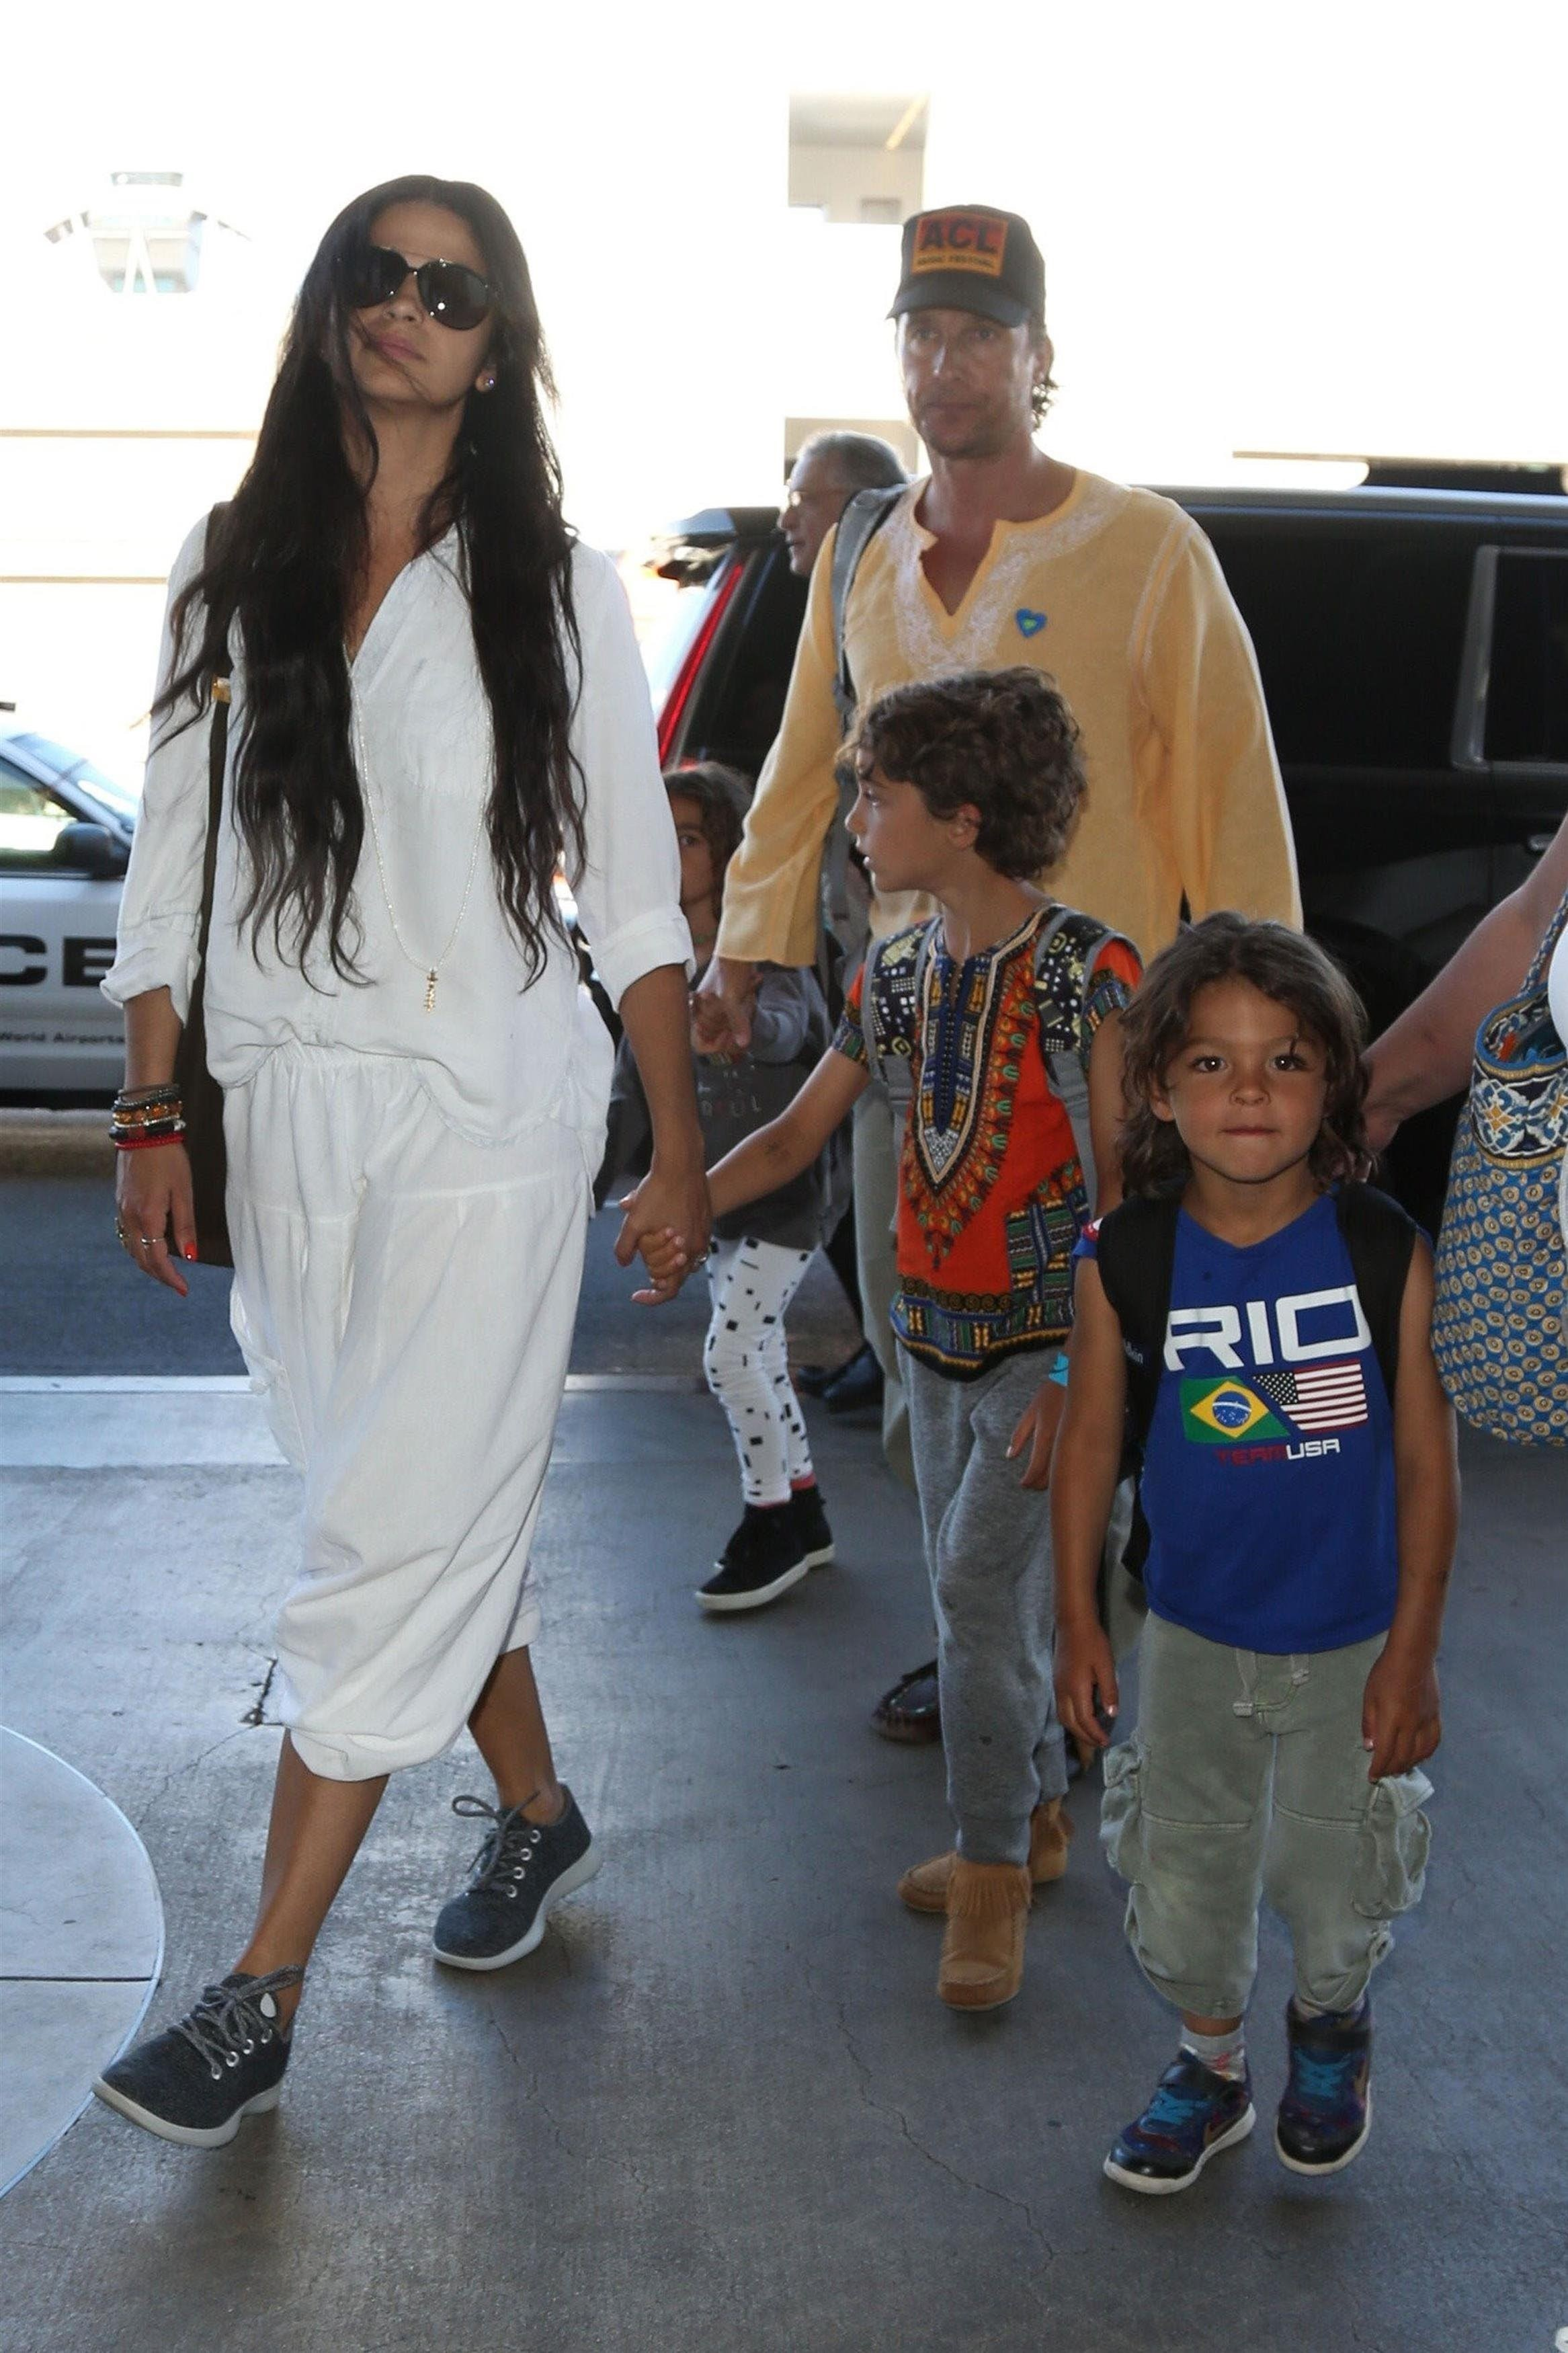 Matthew McConaughey and Camila Alves arrived at LAX with their kids Levi, Livingston, and Vida McConaughey on June 27, 2017.